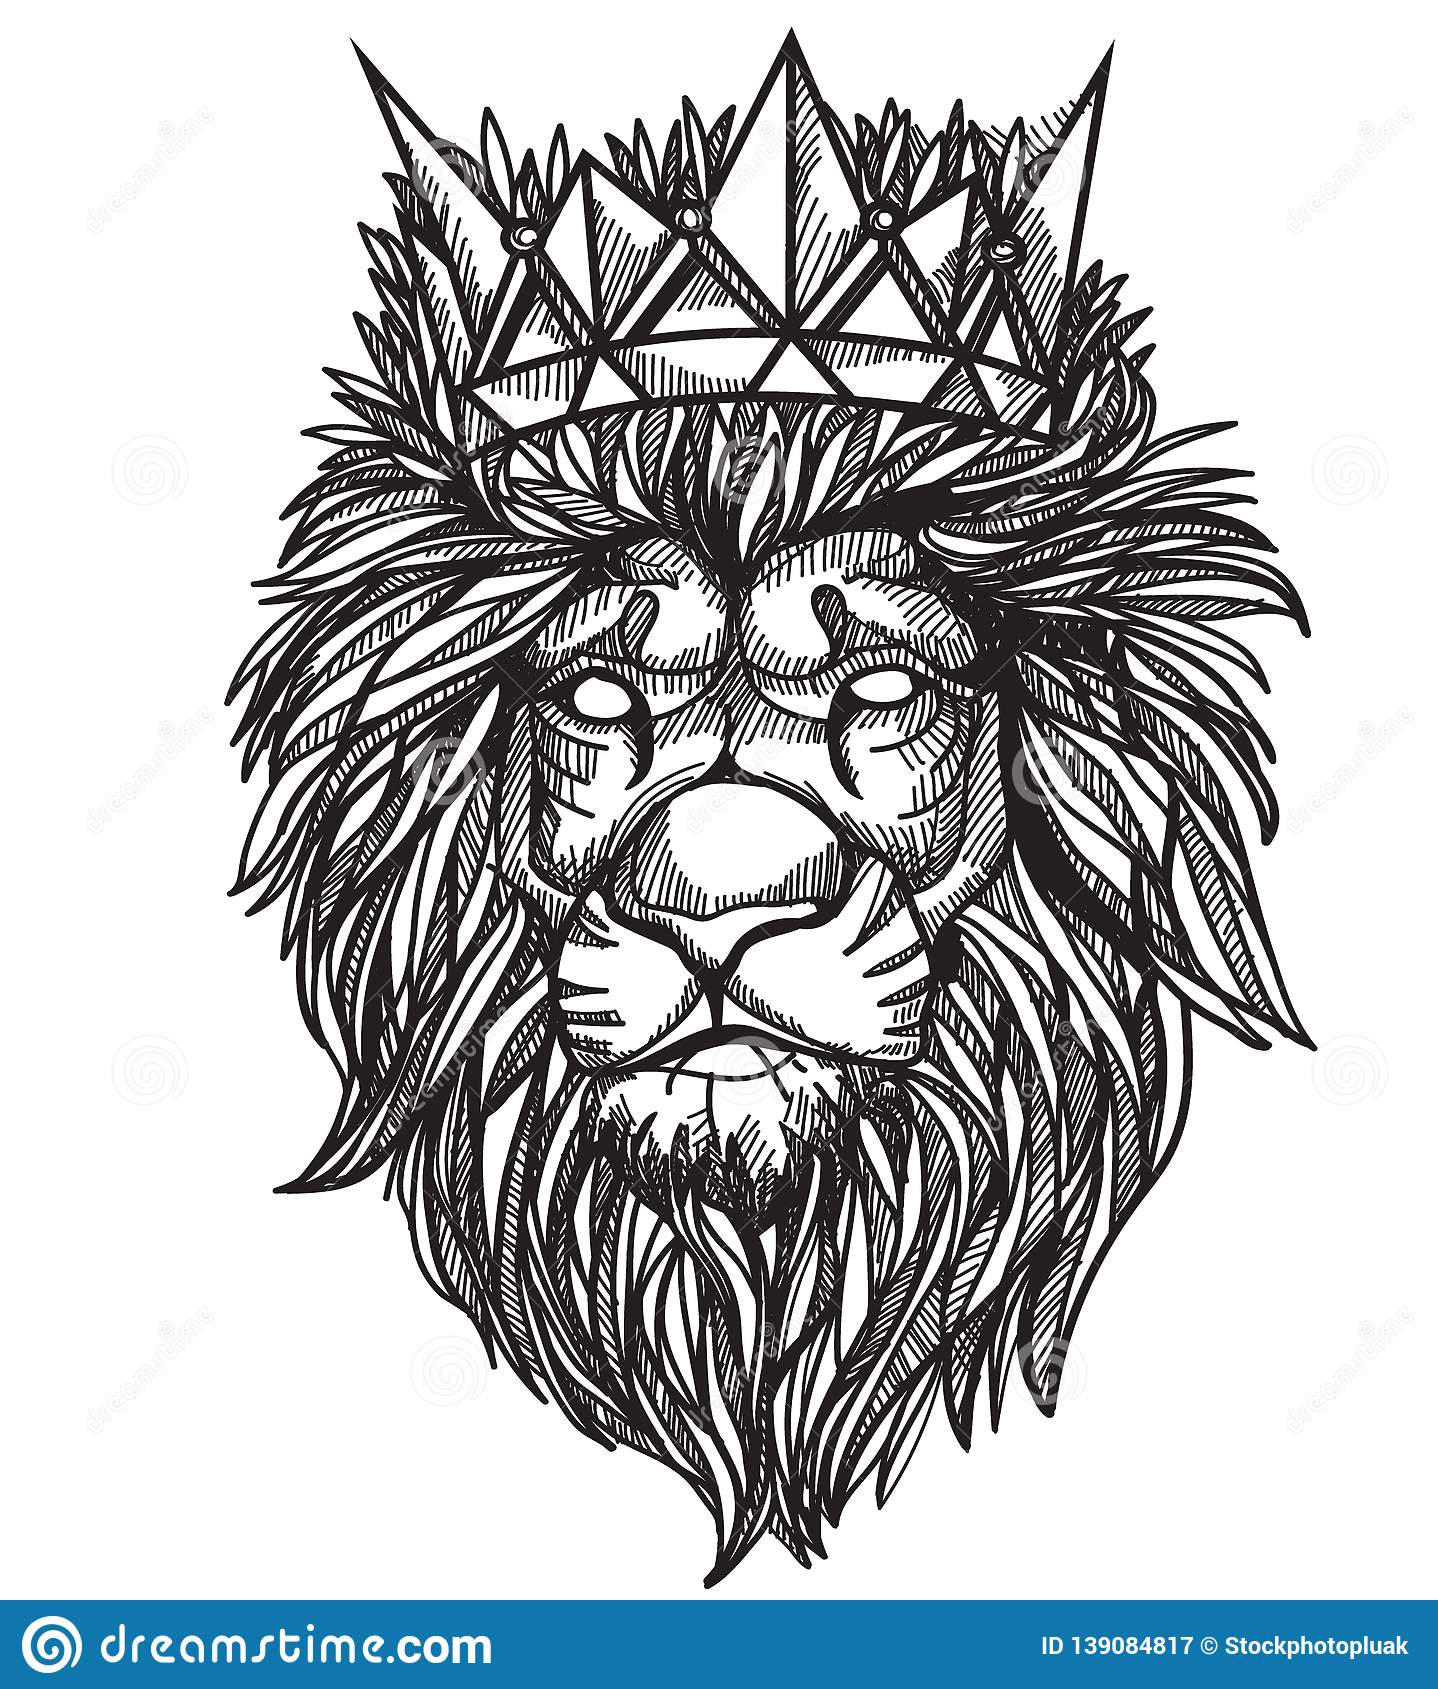 Tattoo art lion hand drawing and sketch black and white